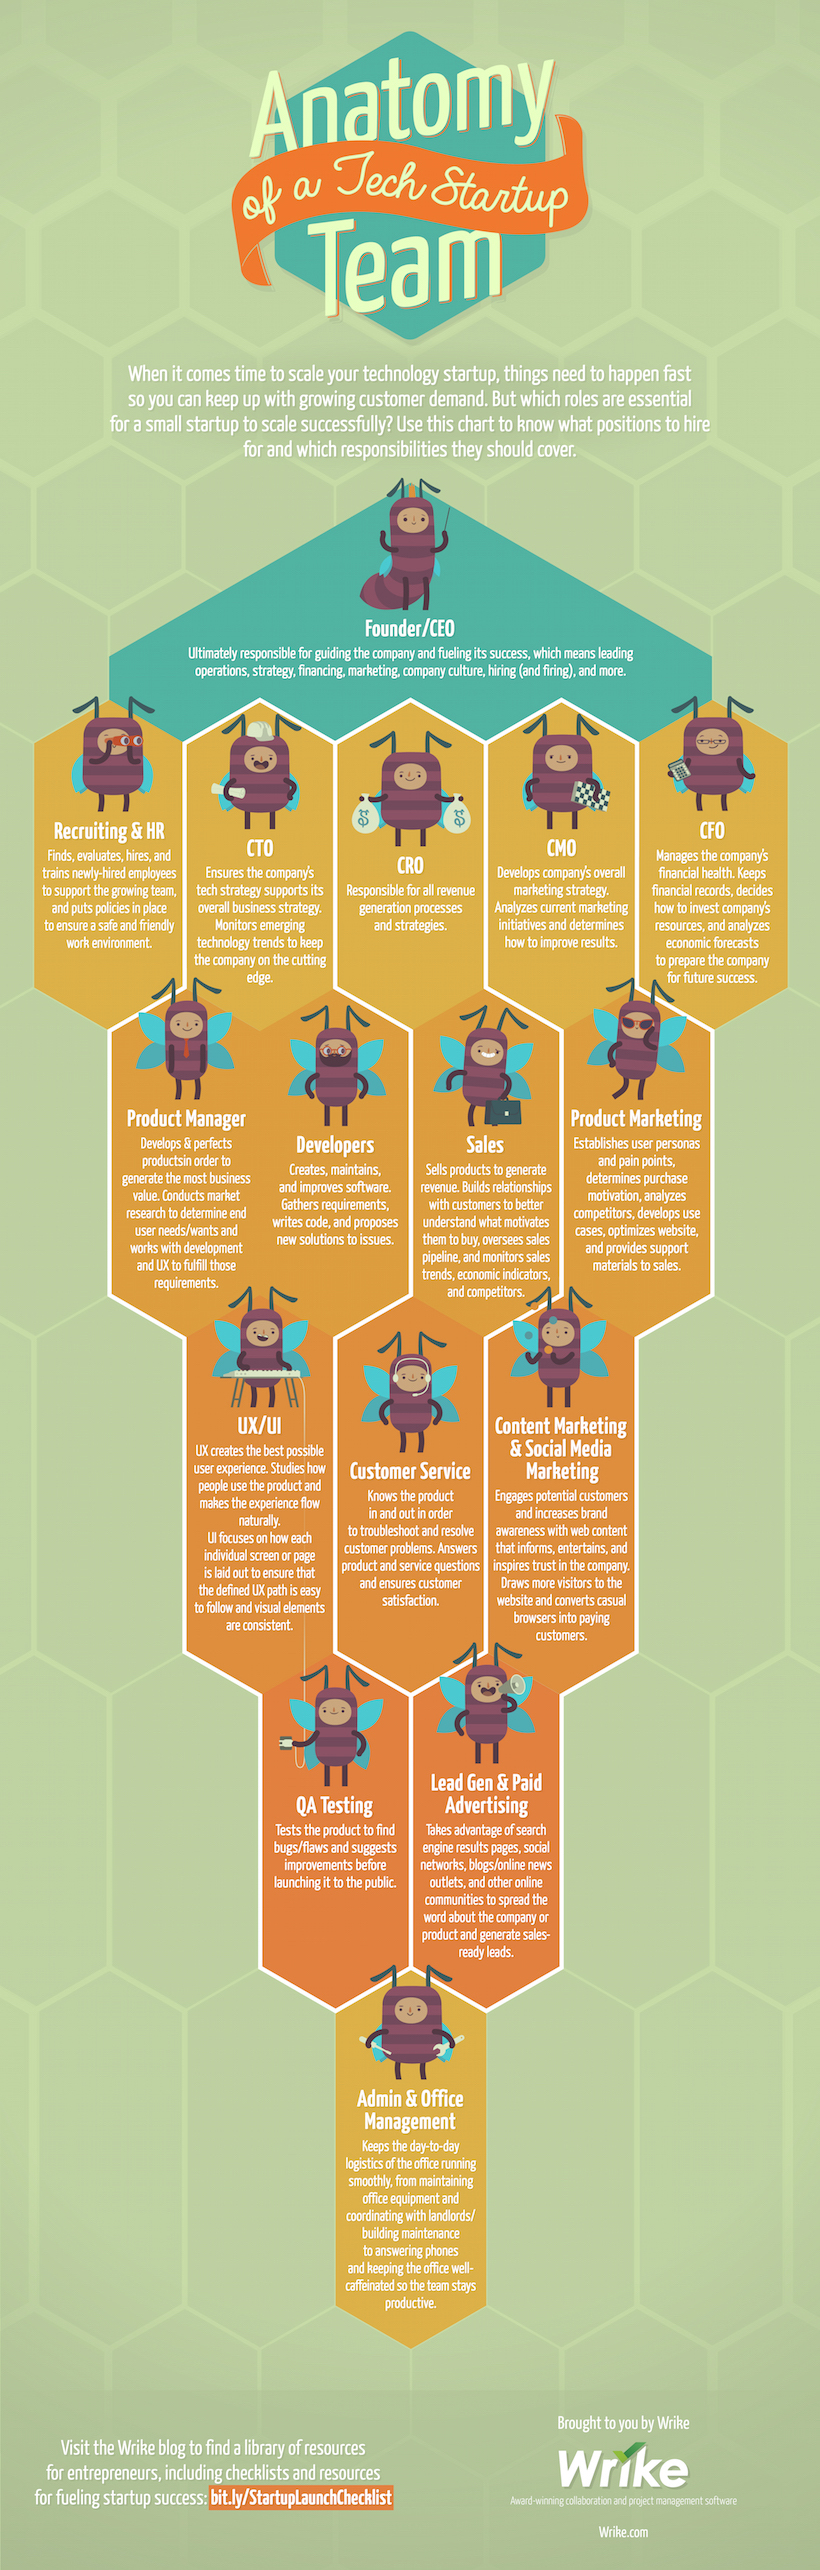 Anatomy of a Tech Startup Team (Infographic) - PakWired - Latest ...